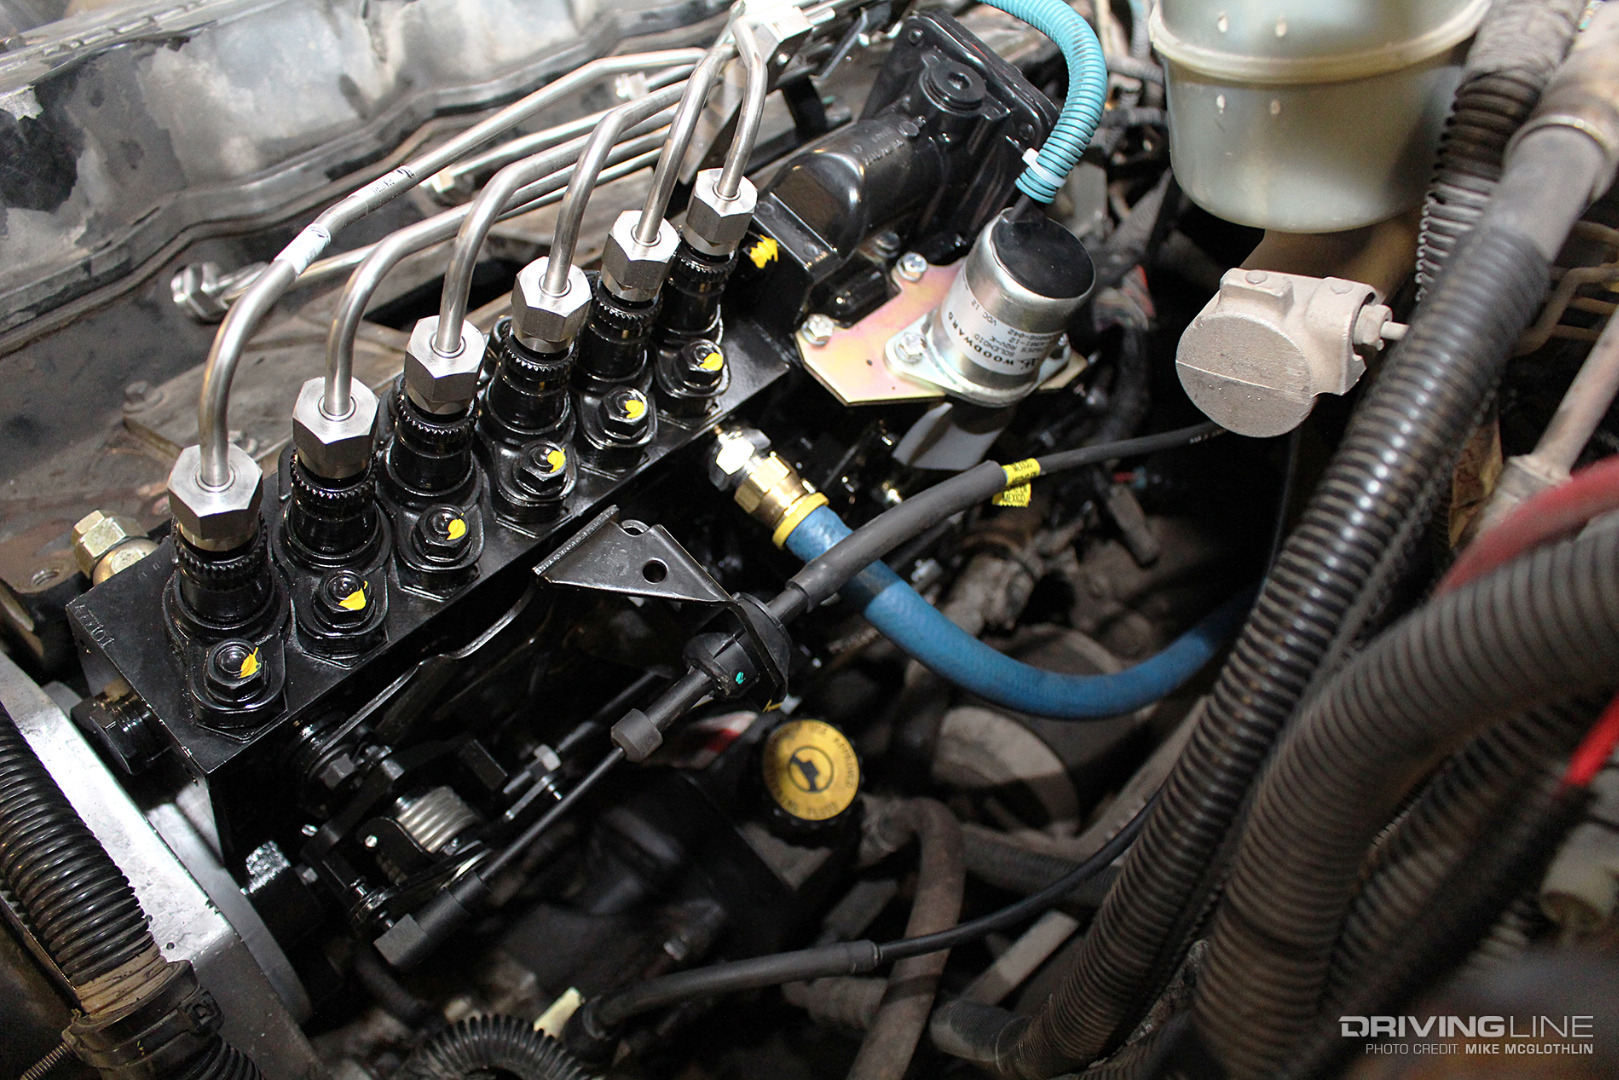 Power to the P-Pump: Injecting New Life Into a 24-Valve